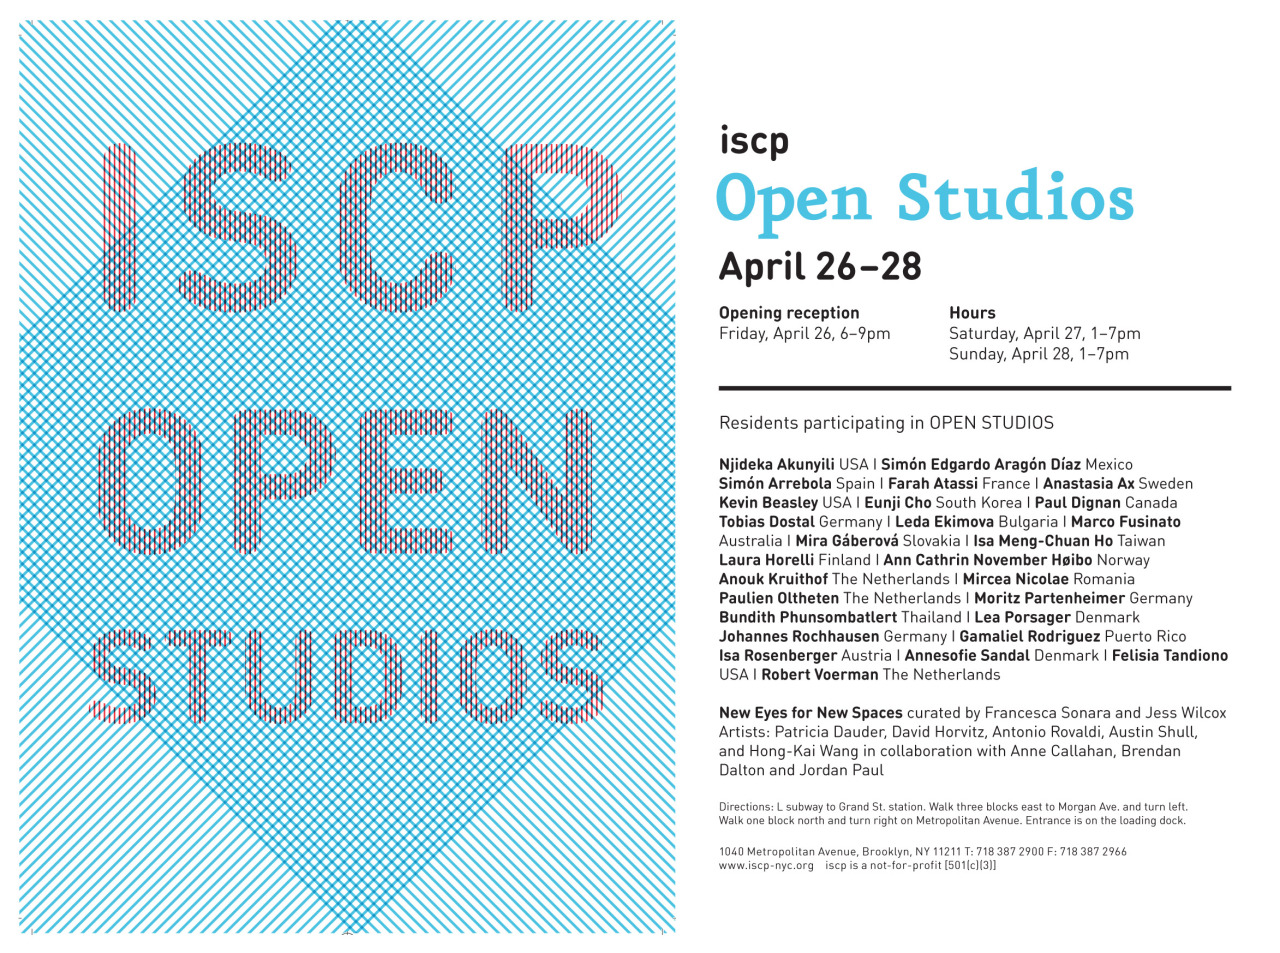 come by at the OPEN STUDIOS of ISCP in NYC    more info you'll find here